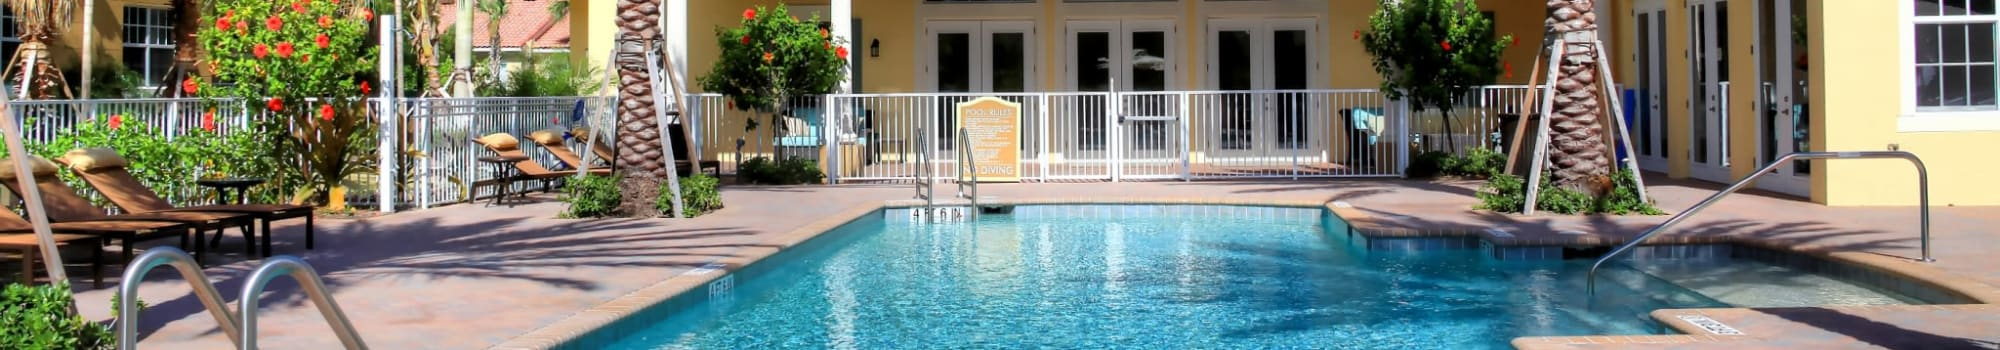 Join our team at Riverwalk Pointe in Jupiter, Florida